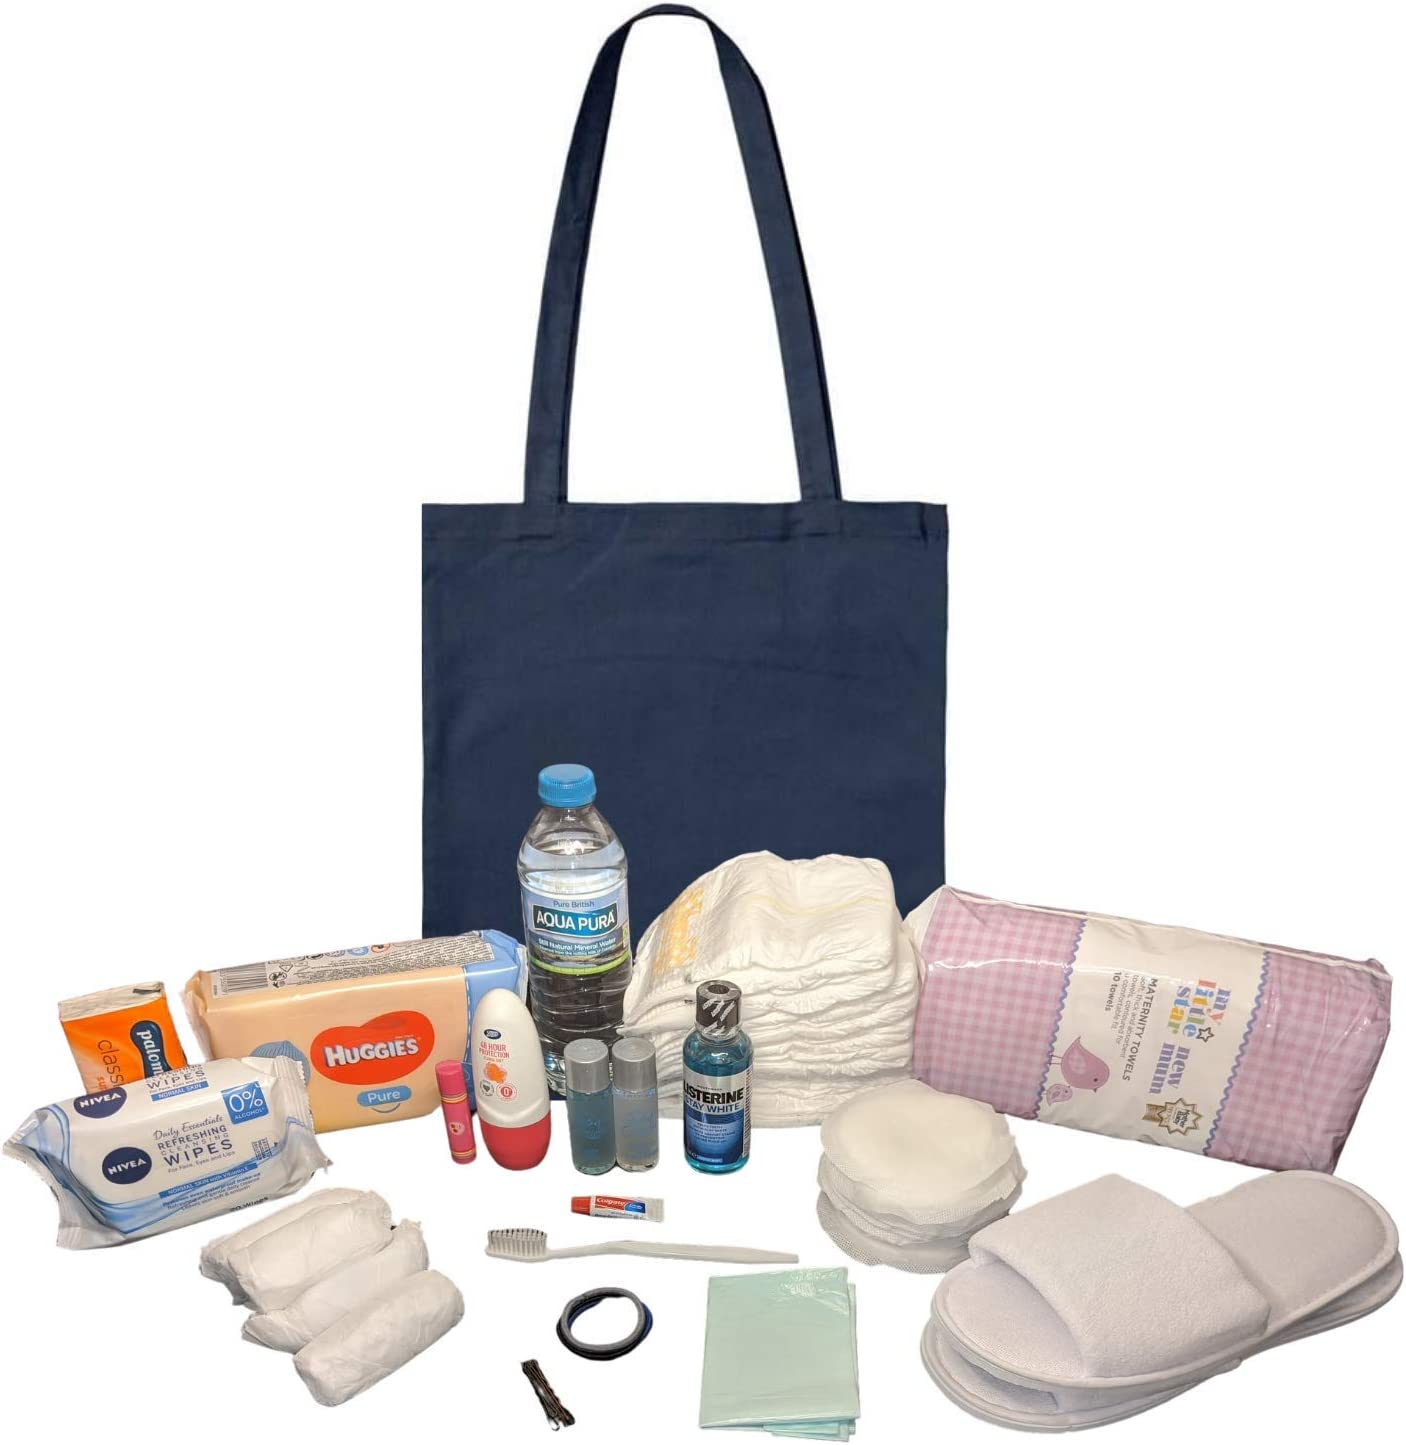 Pre Packed Maternity Hospital Navy Cotton Tote Bag Newborn Baby Set